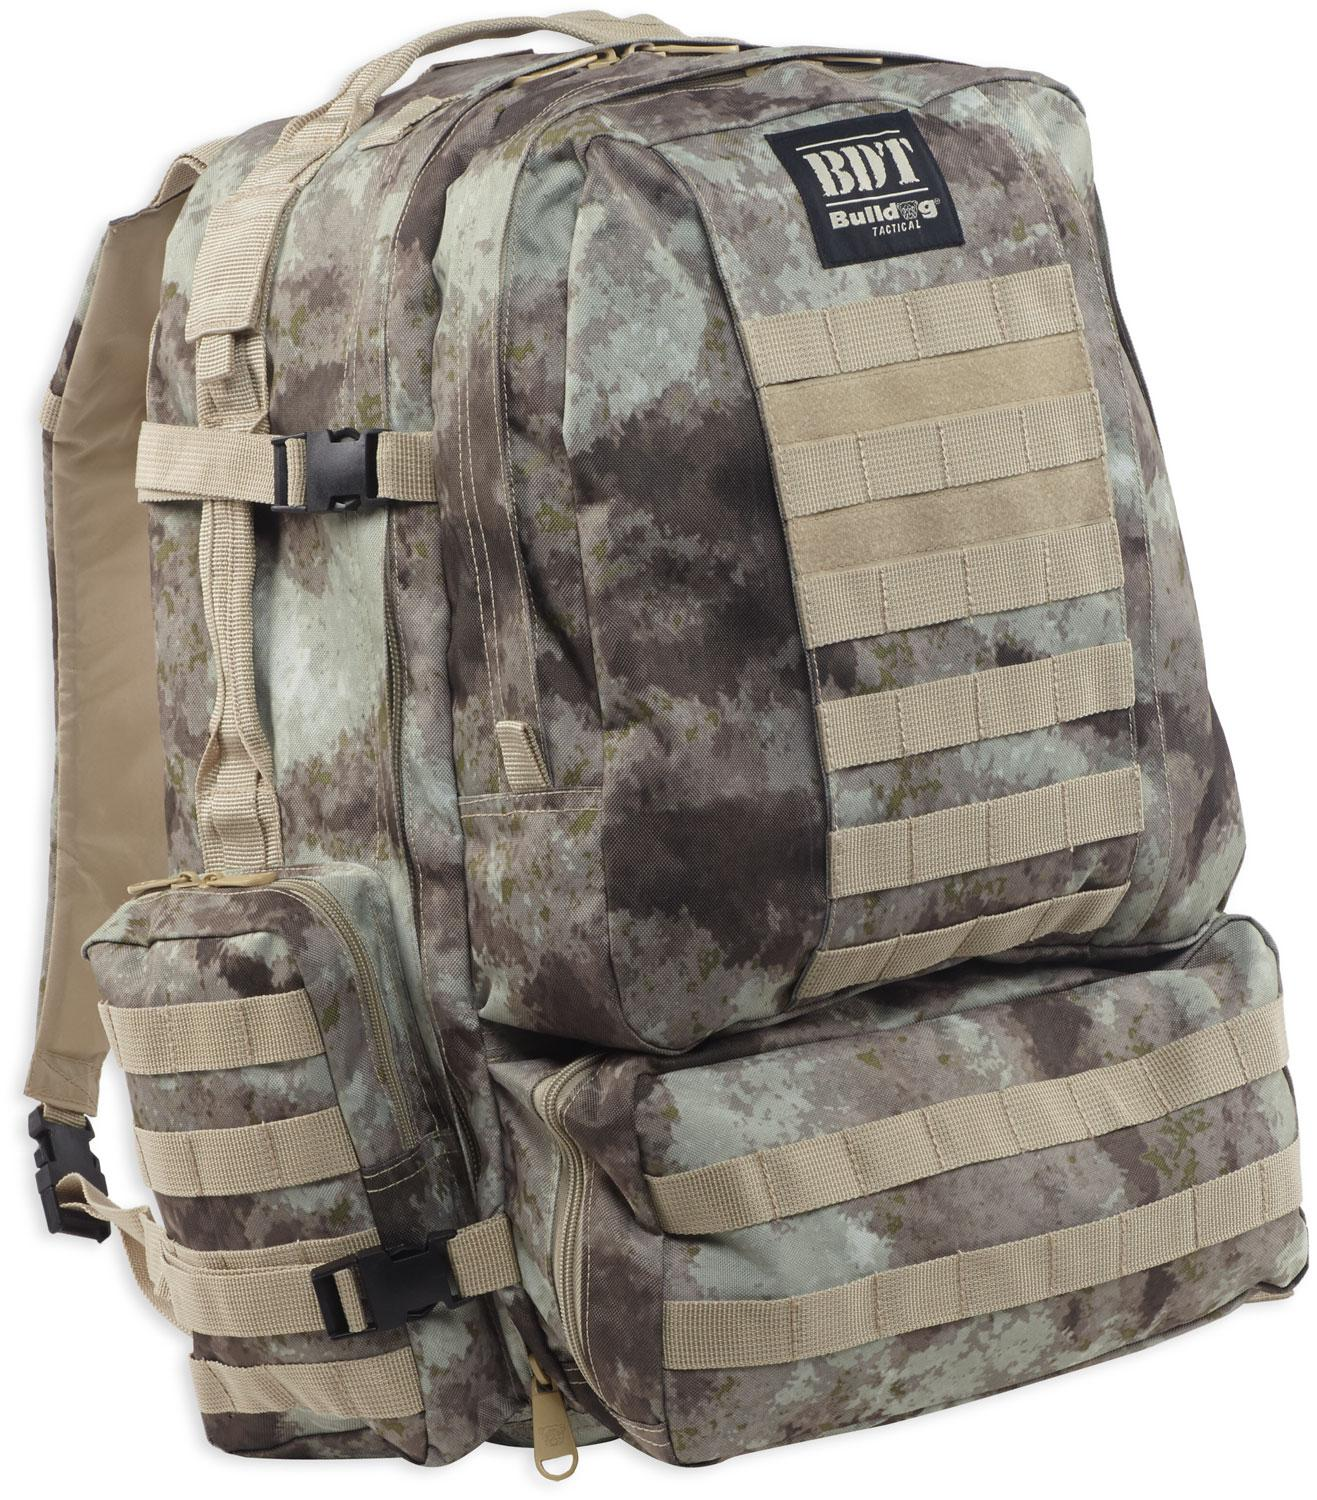 Bulldog Bdt412au Bdt Large Backpack A- Tacs Au